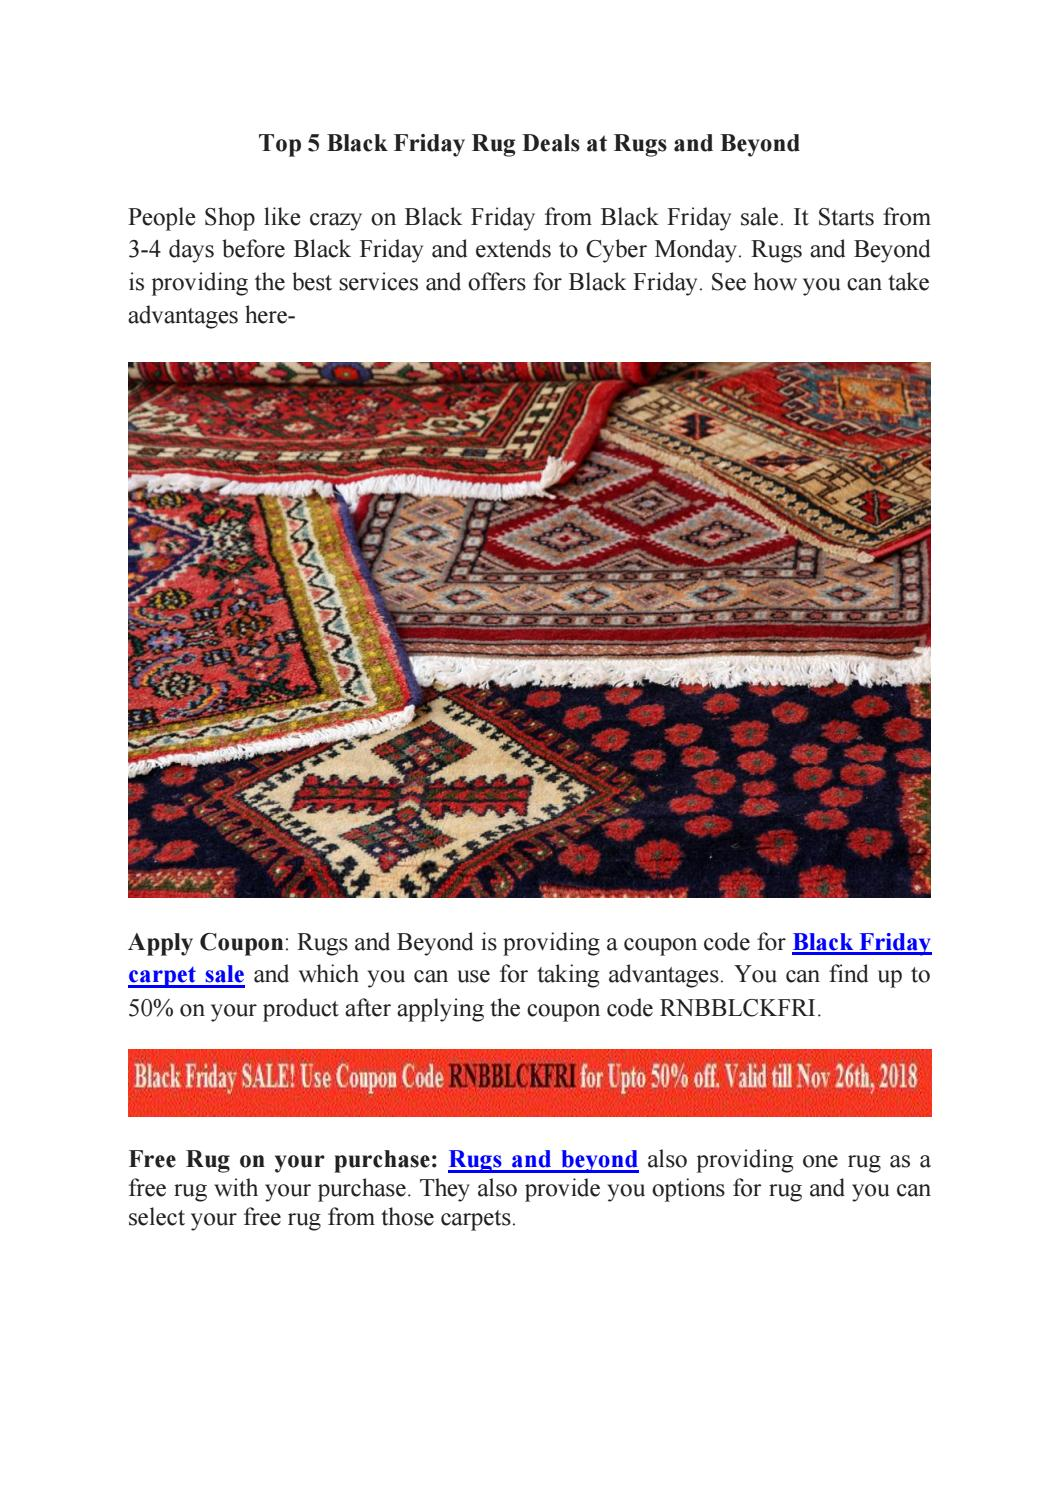 Top 5 Black Friday Rug Deals And Offers